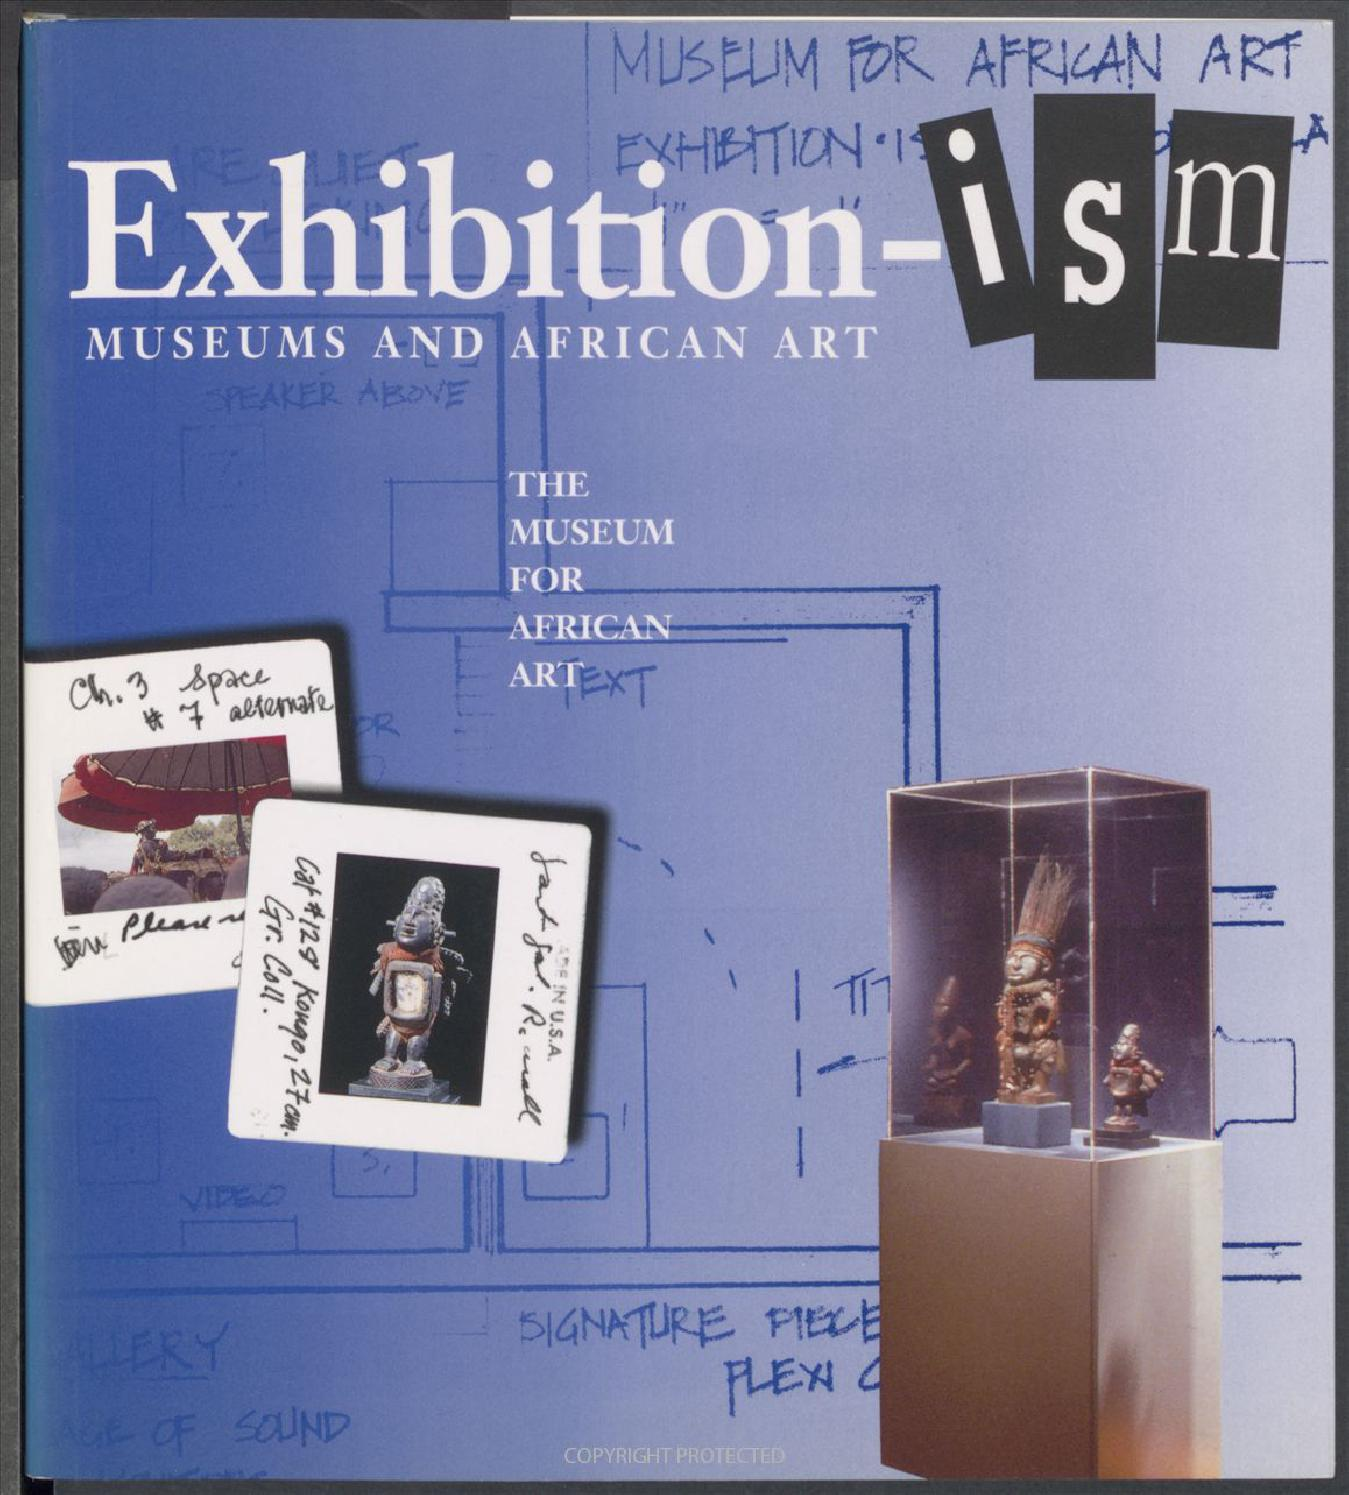 Super Exhibition Ism Museums And African Art By The Africa Center Issuu Dandim Mohammedshrine Wiring Diagrams Dandimmohammedshrineorg